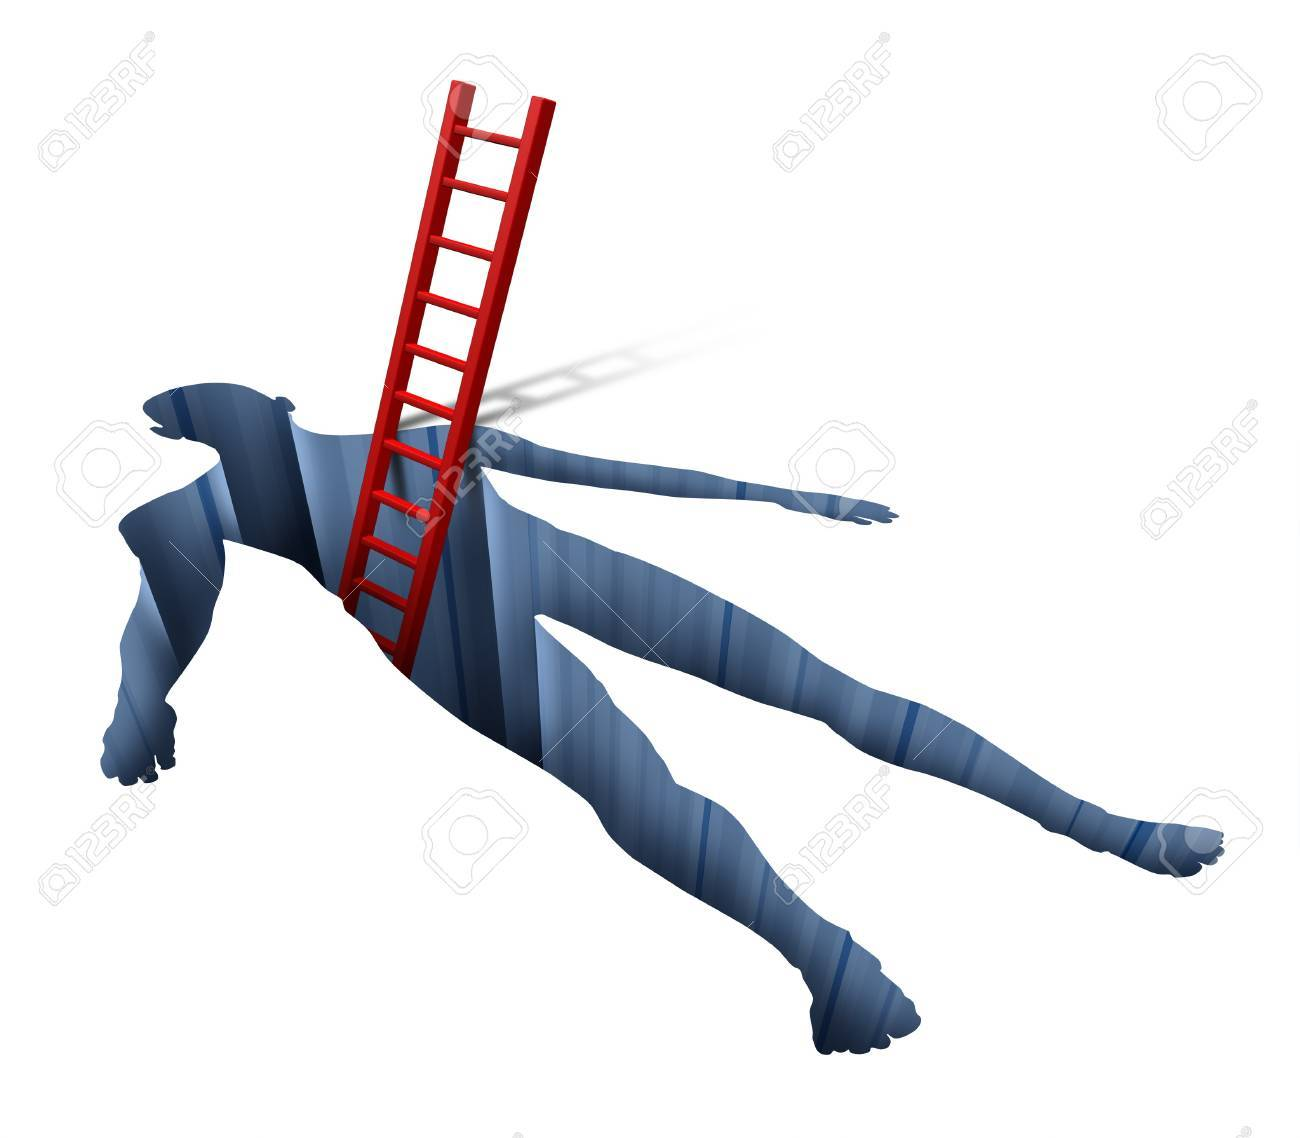 Medical exam and diagnosis with a human body shape hole and a red ladder searching inside as a health care concept for patient care finding a cure with invasive surgery of inner organs by a hospital doctor on a white background Stock Photo - 13325449